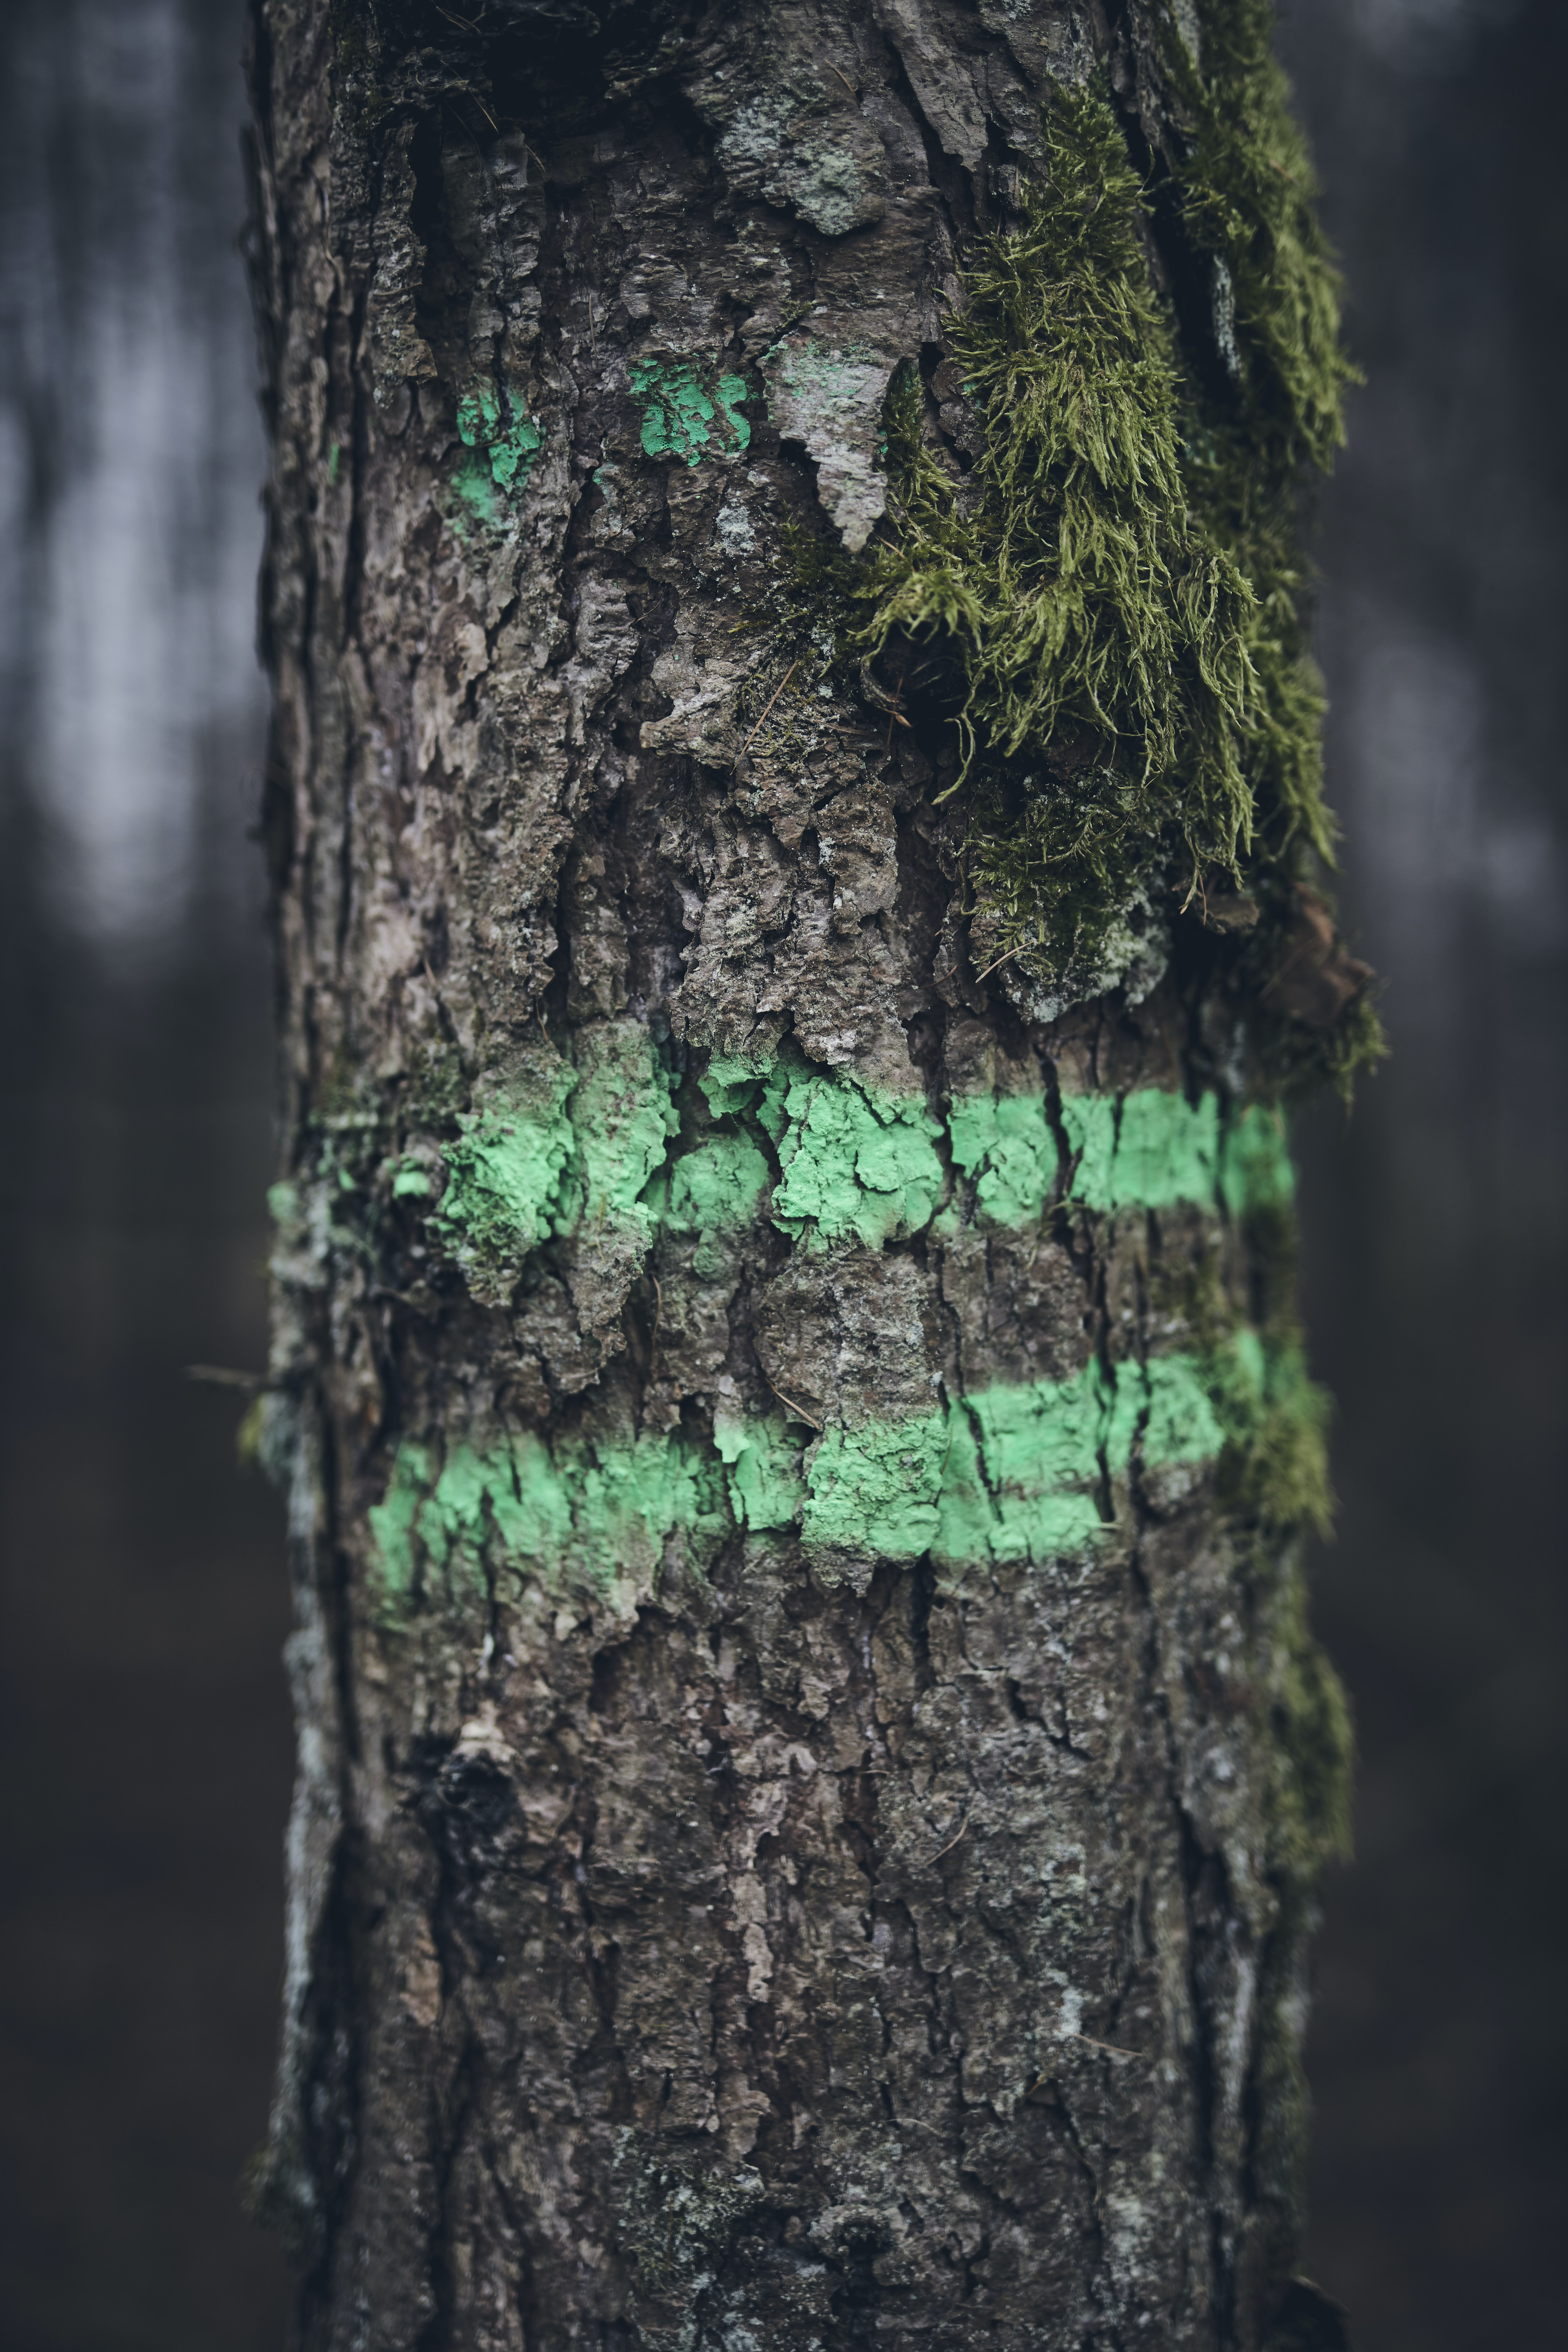 brown tree trunk with green striped paint and moss